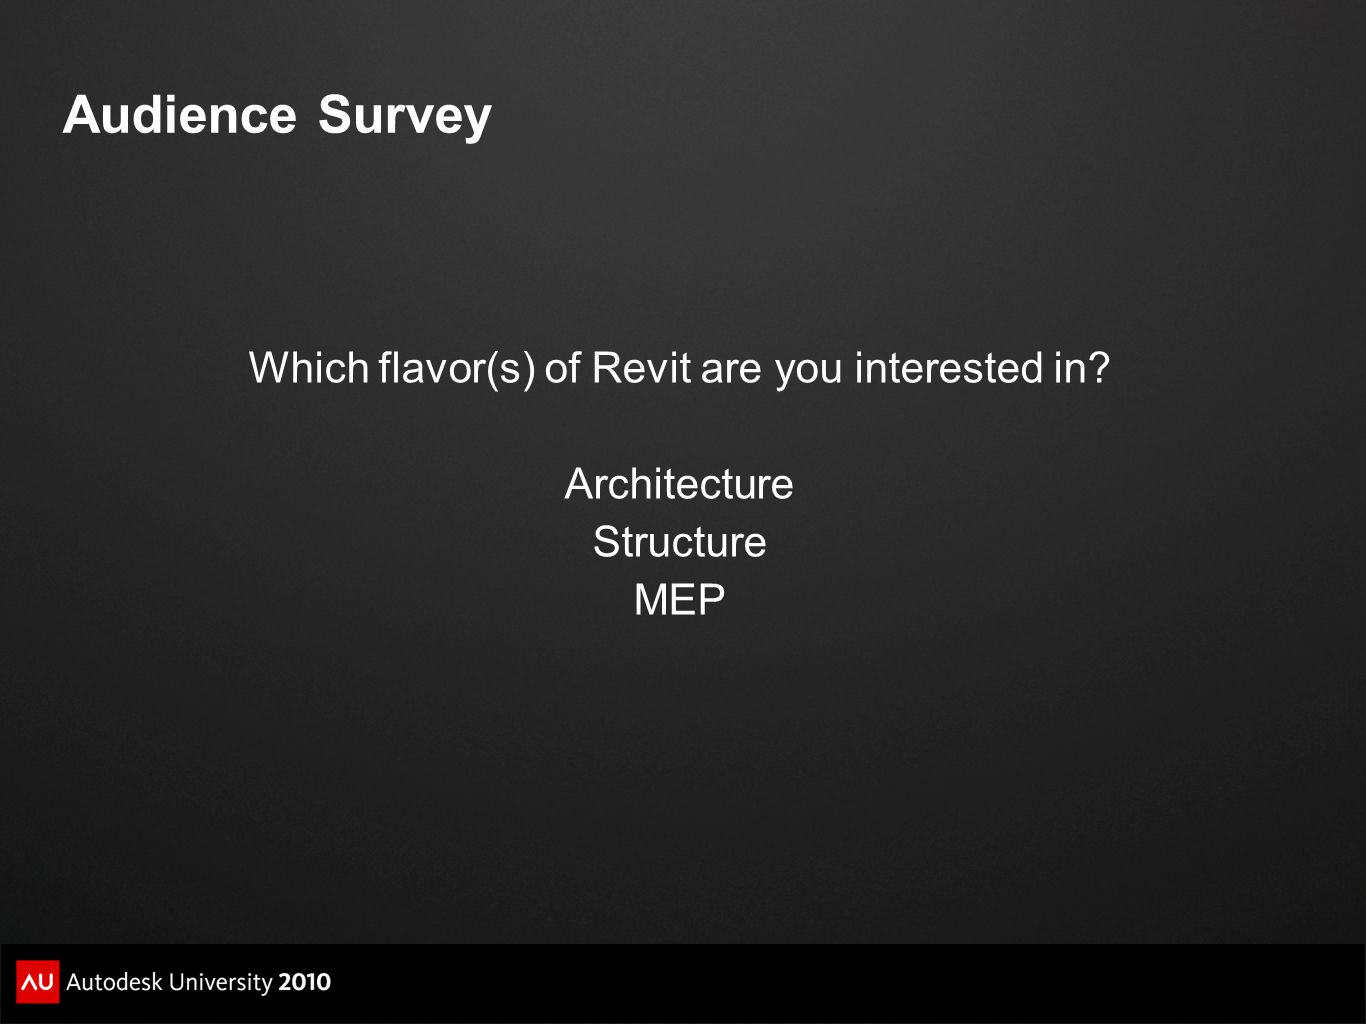 Which flavor(s) of Revit are you interested in